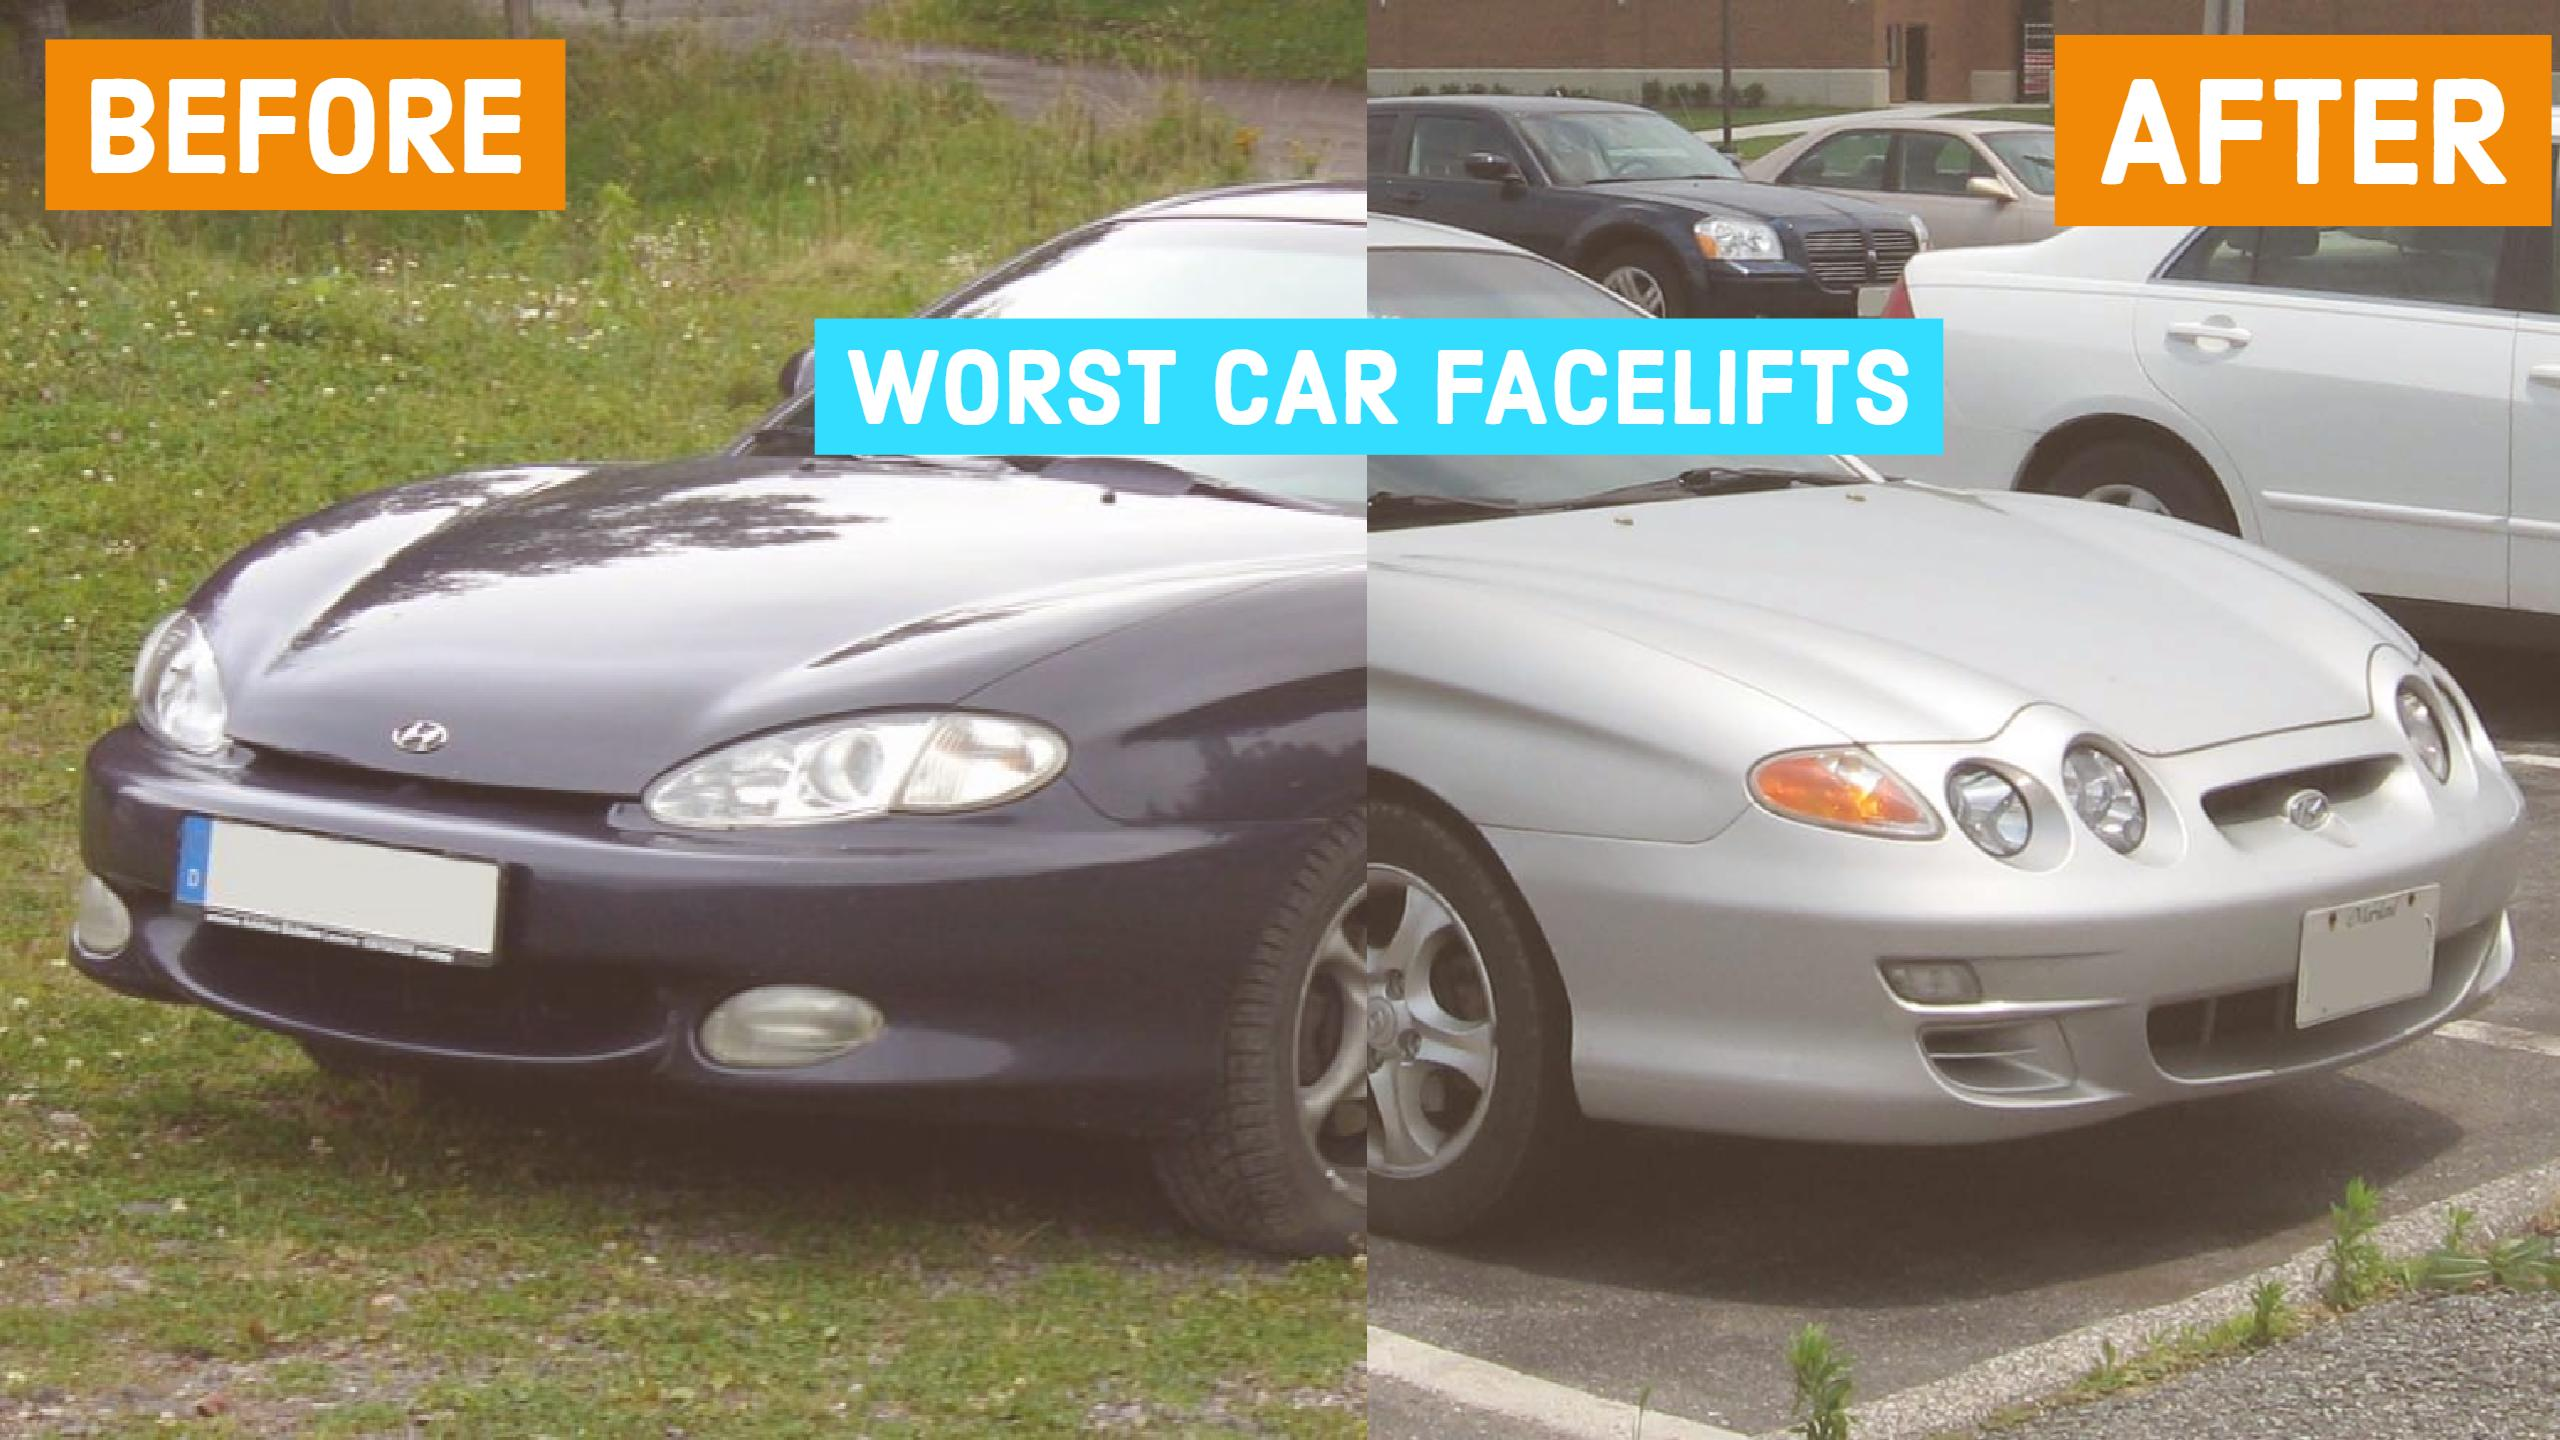 10 Worst Car Facelifts of all Time (Before And After Pics)